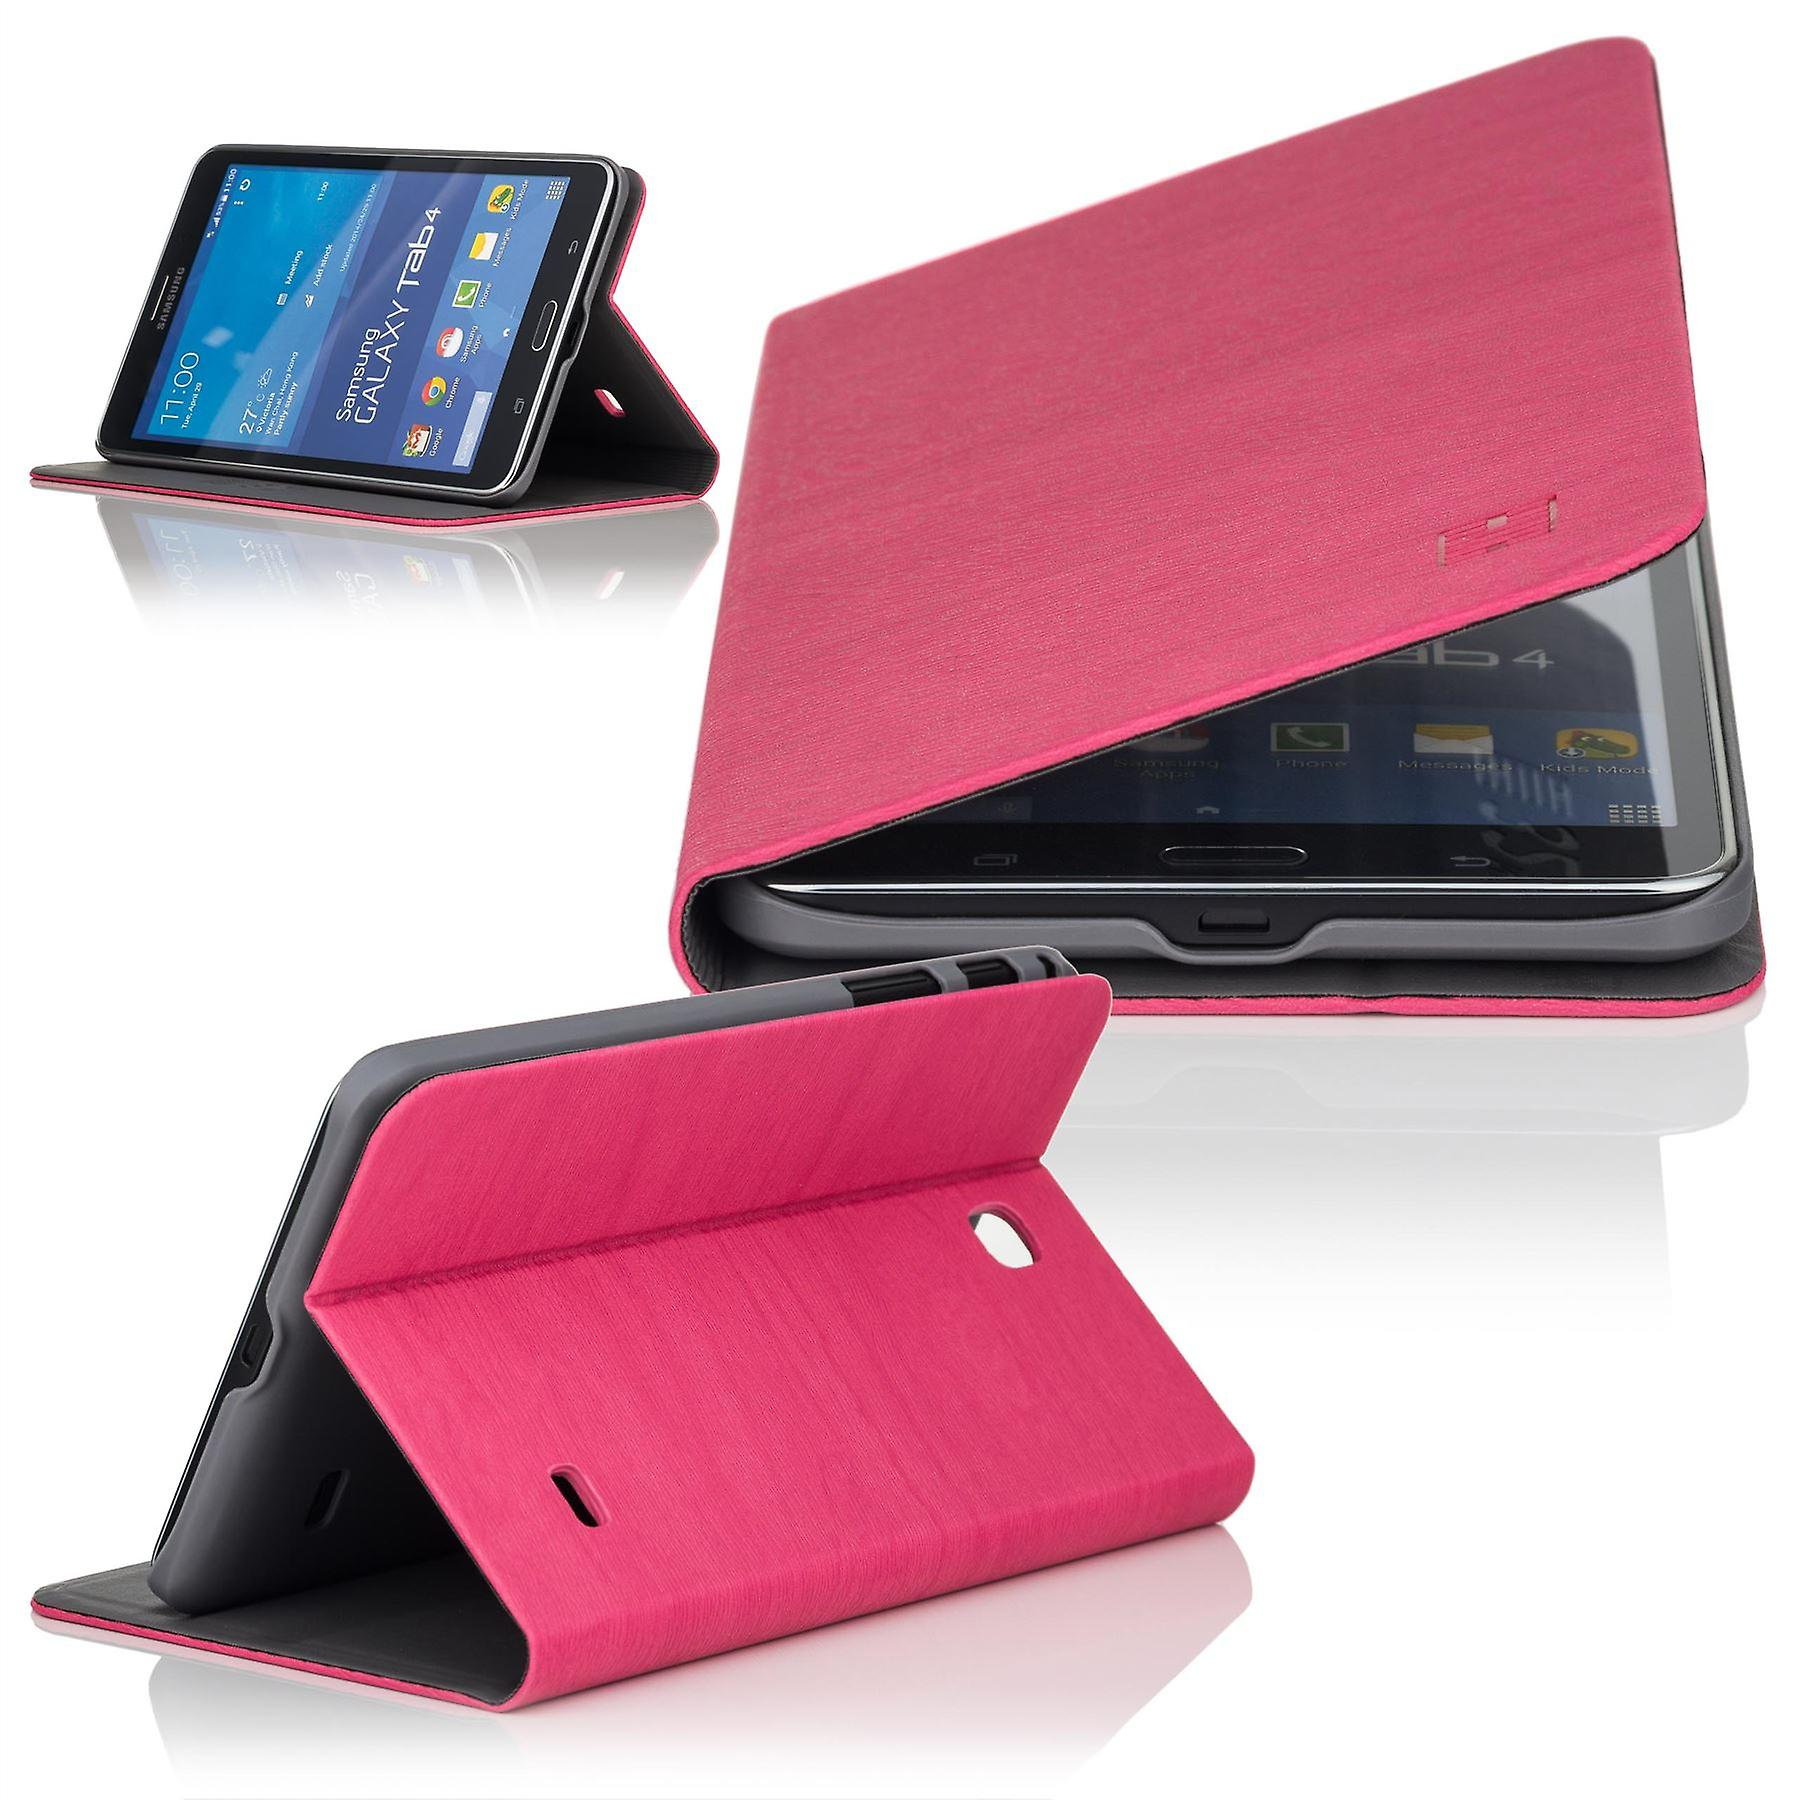 Slim Angle cover case for Samsung Galaxy Tab 4 T230 (7 inch) - Hot Pink